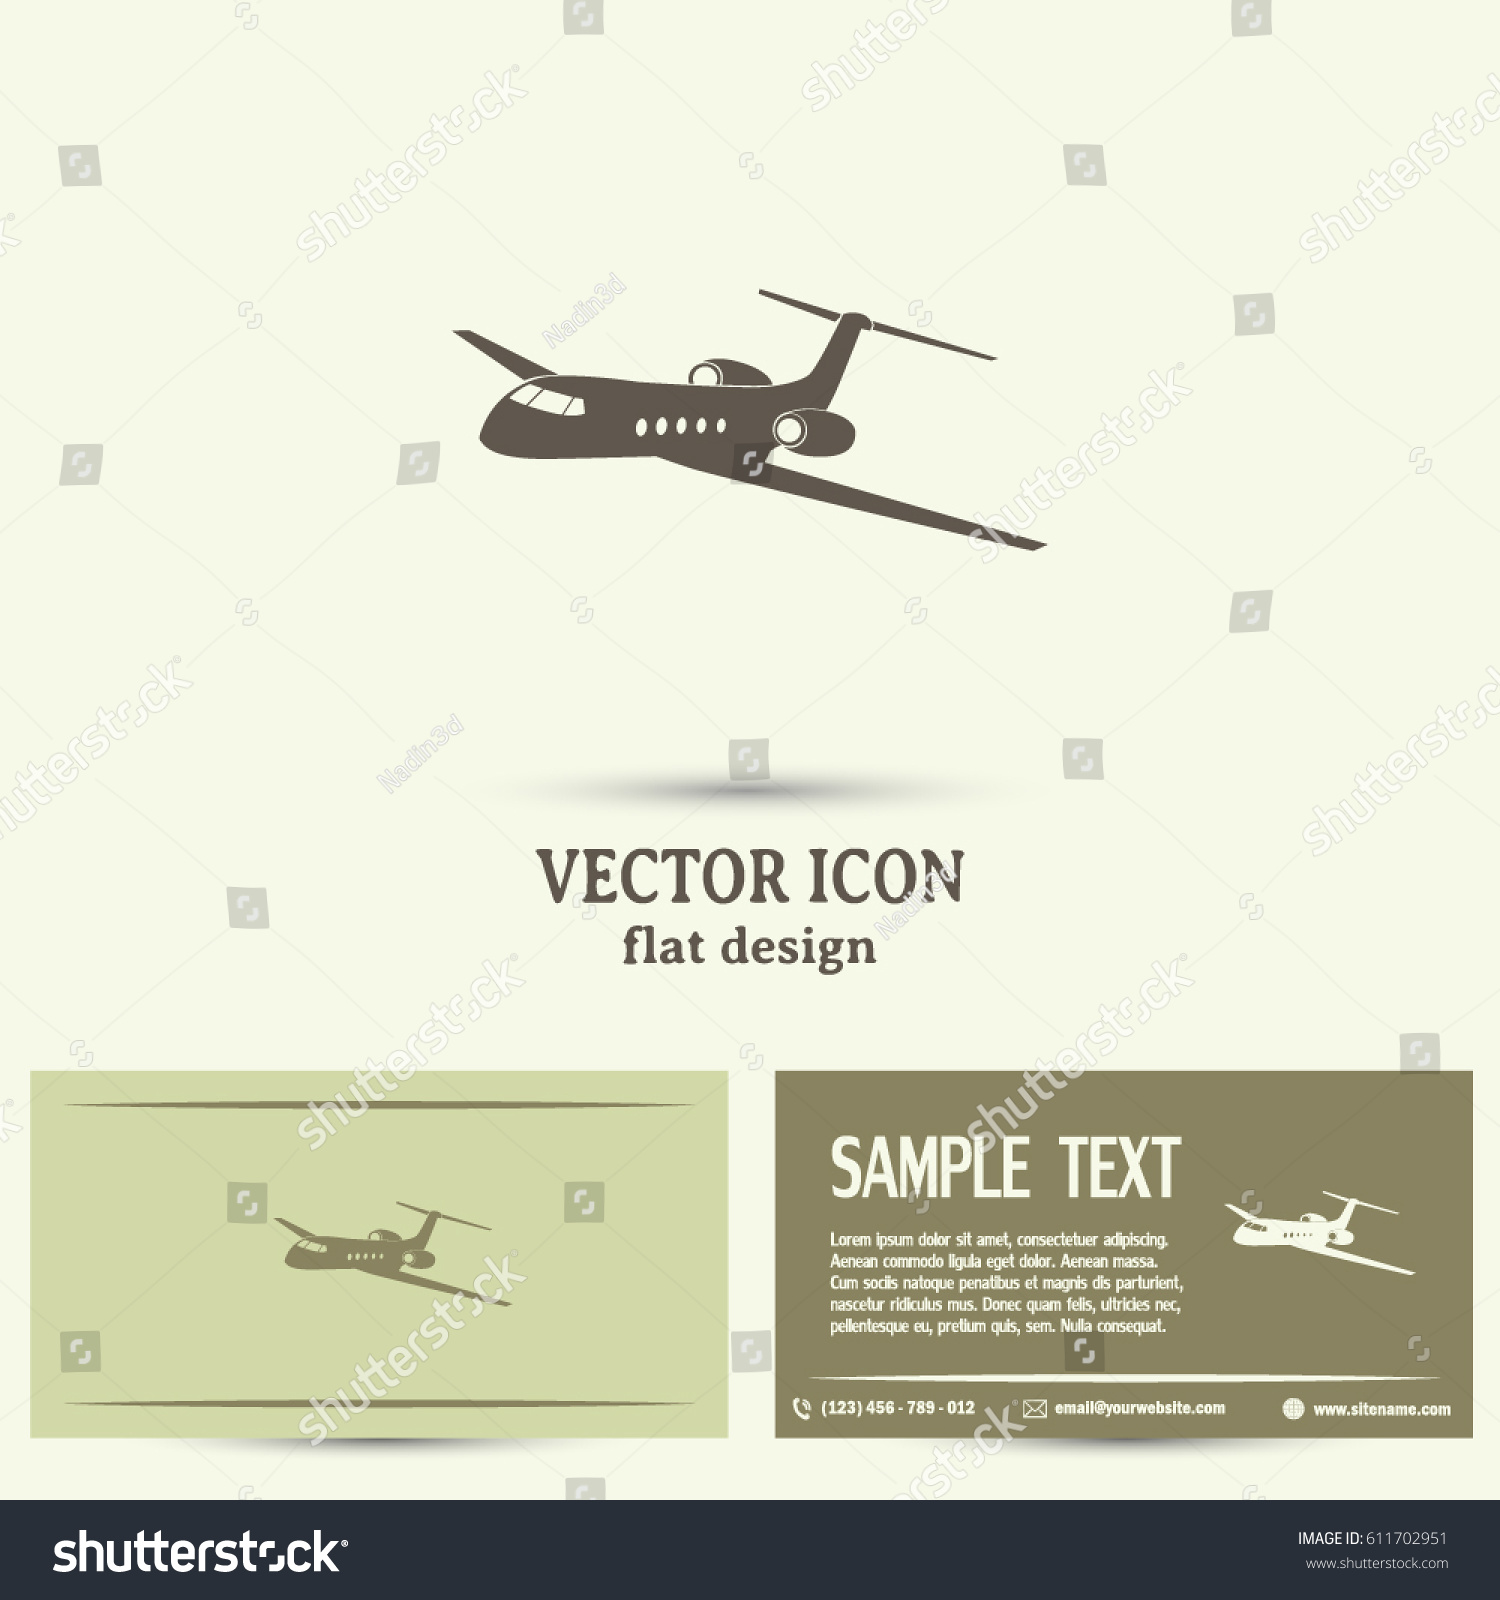 Business Cards Design Plane Icon Flat Stock Vector 611702951 ...